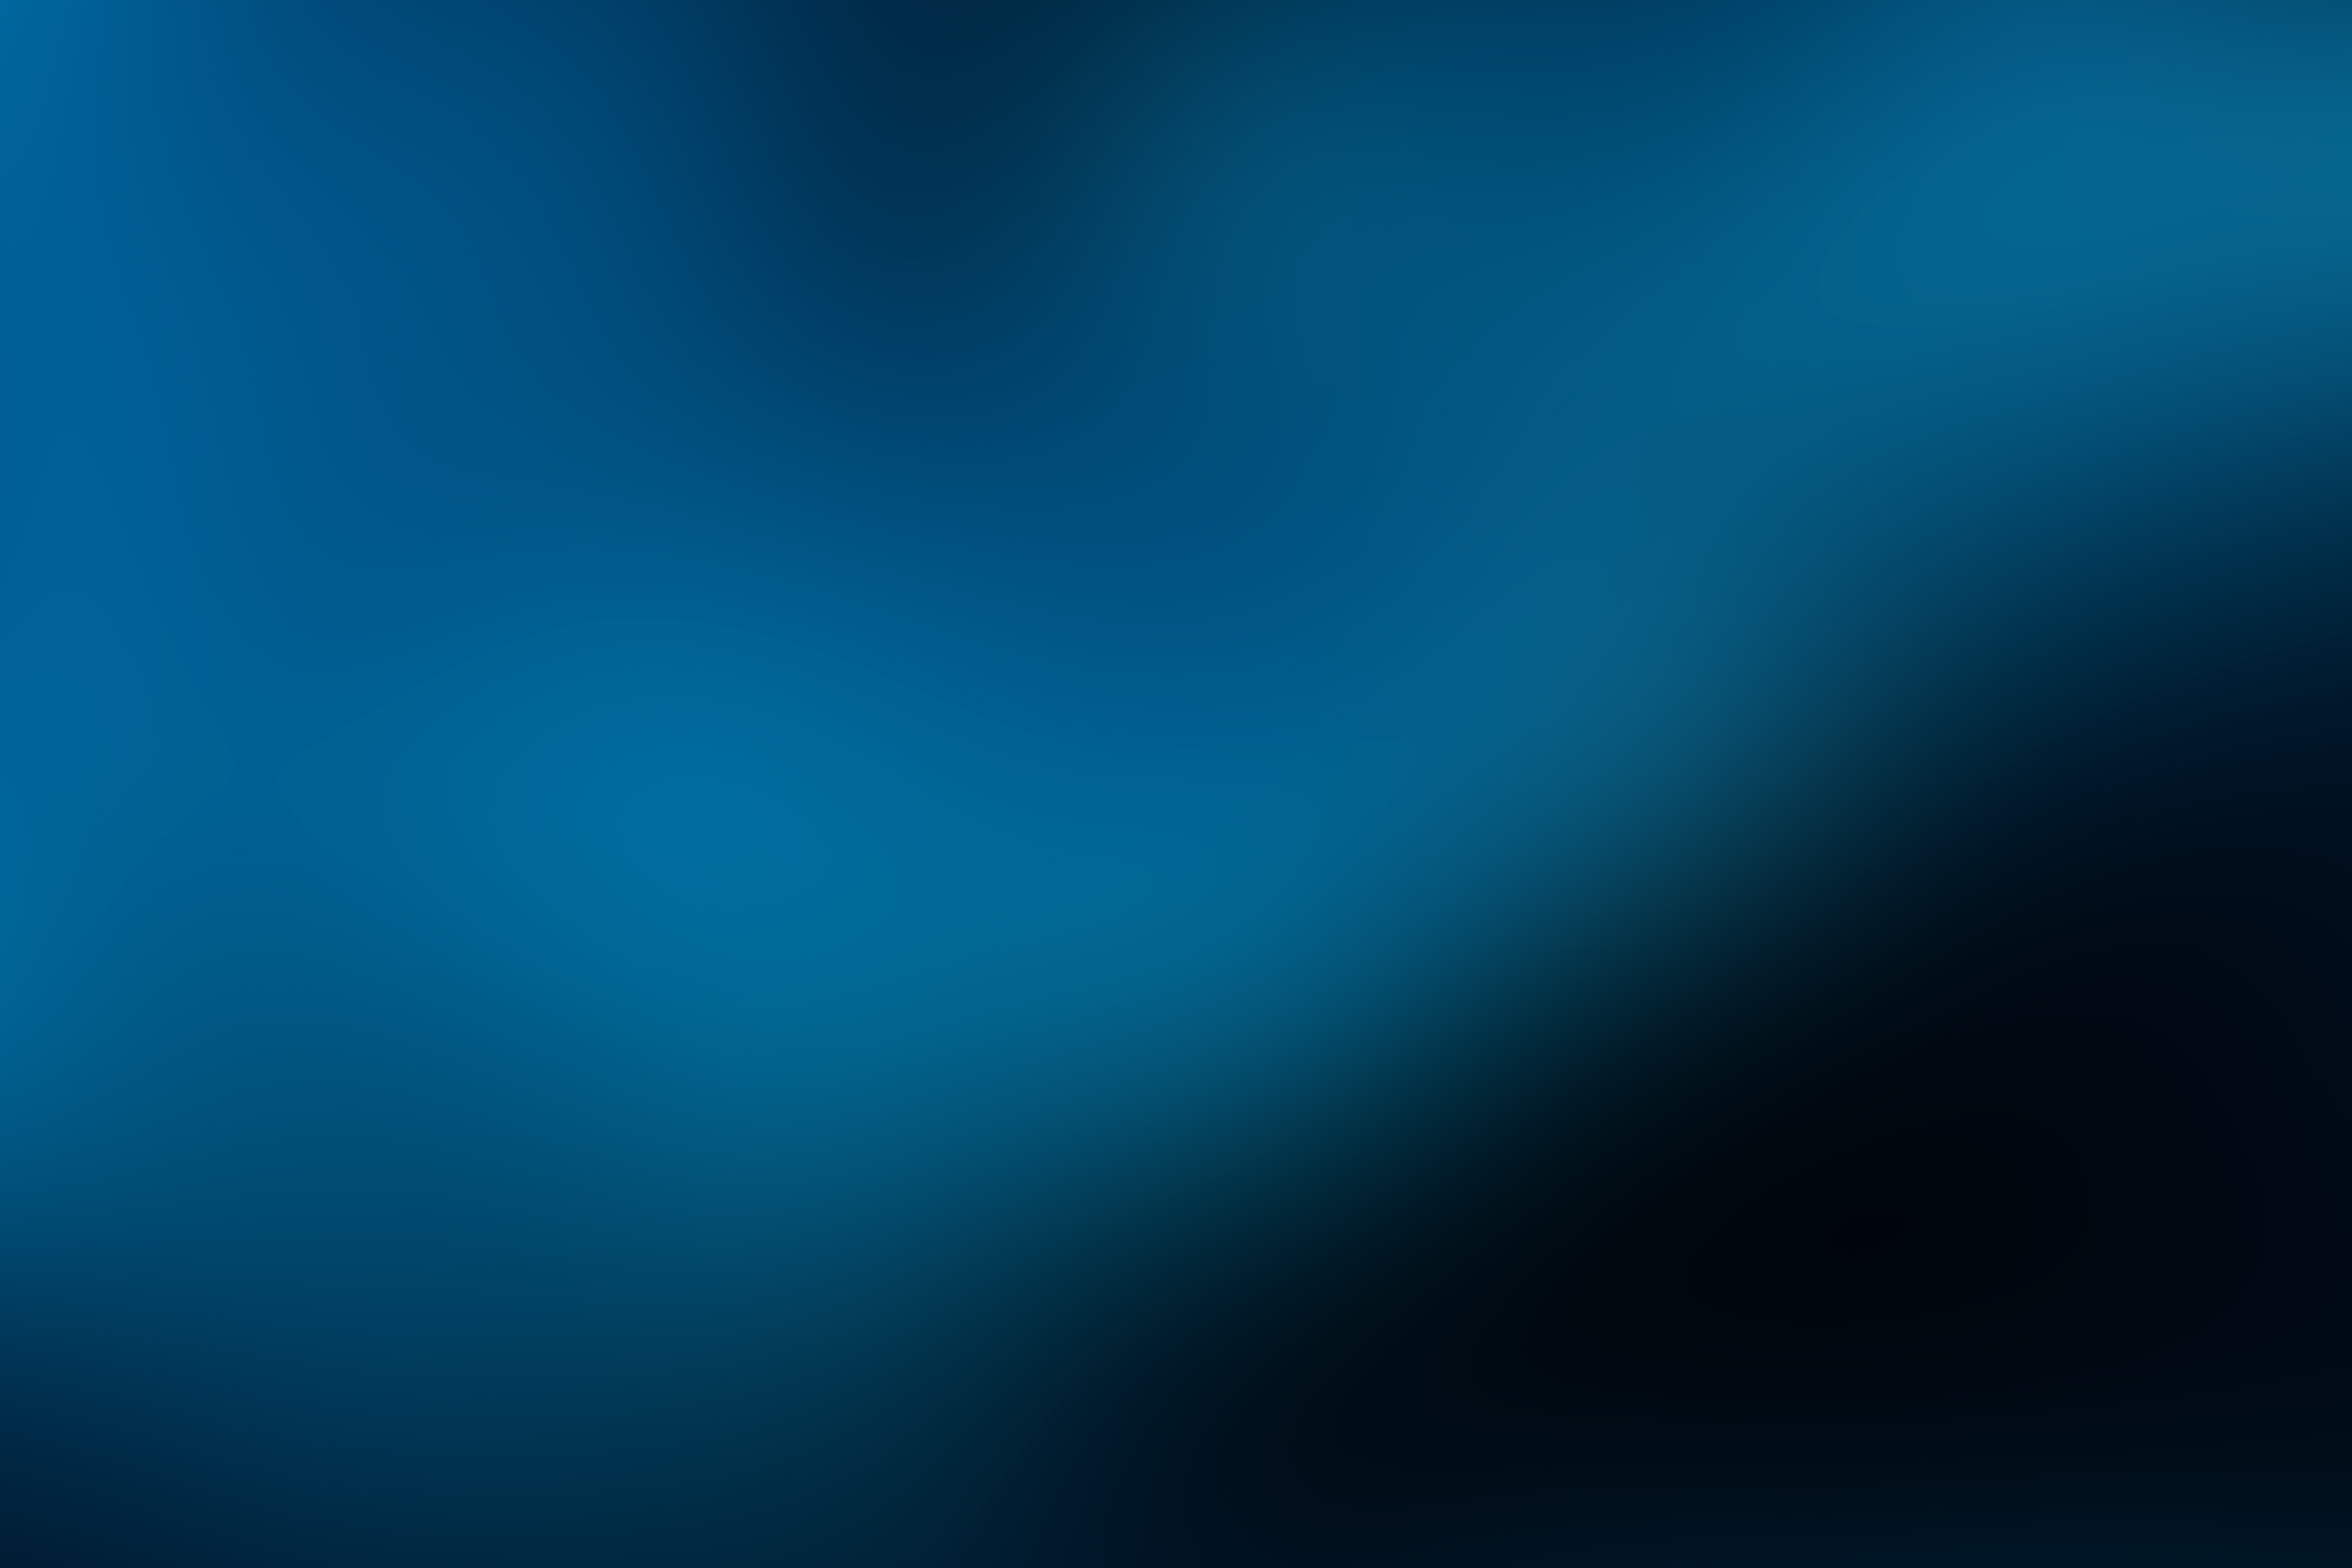 blue abstract simple background, hd abstract, 4k wallpapers, images